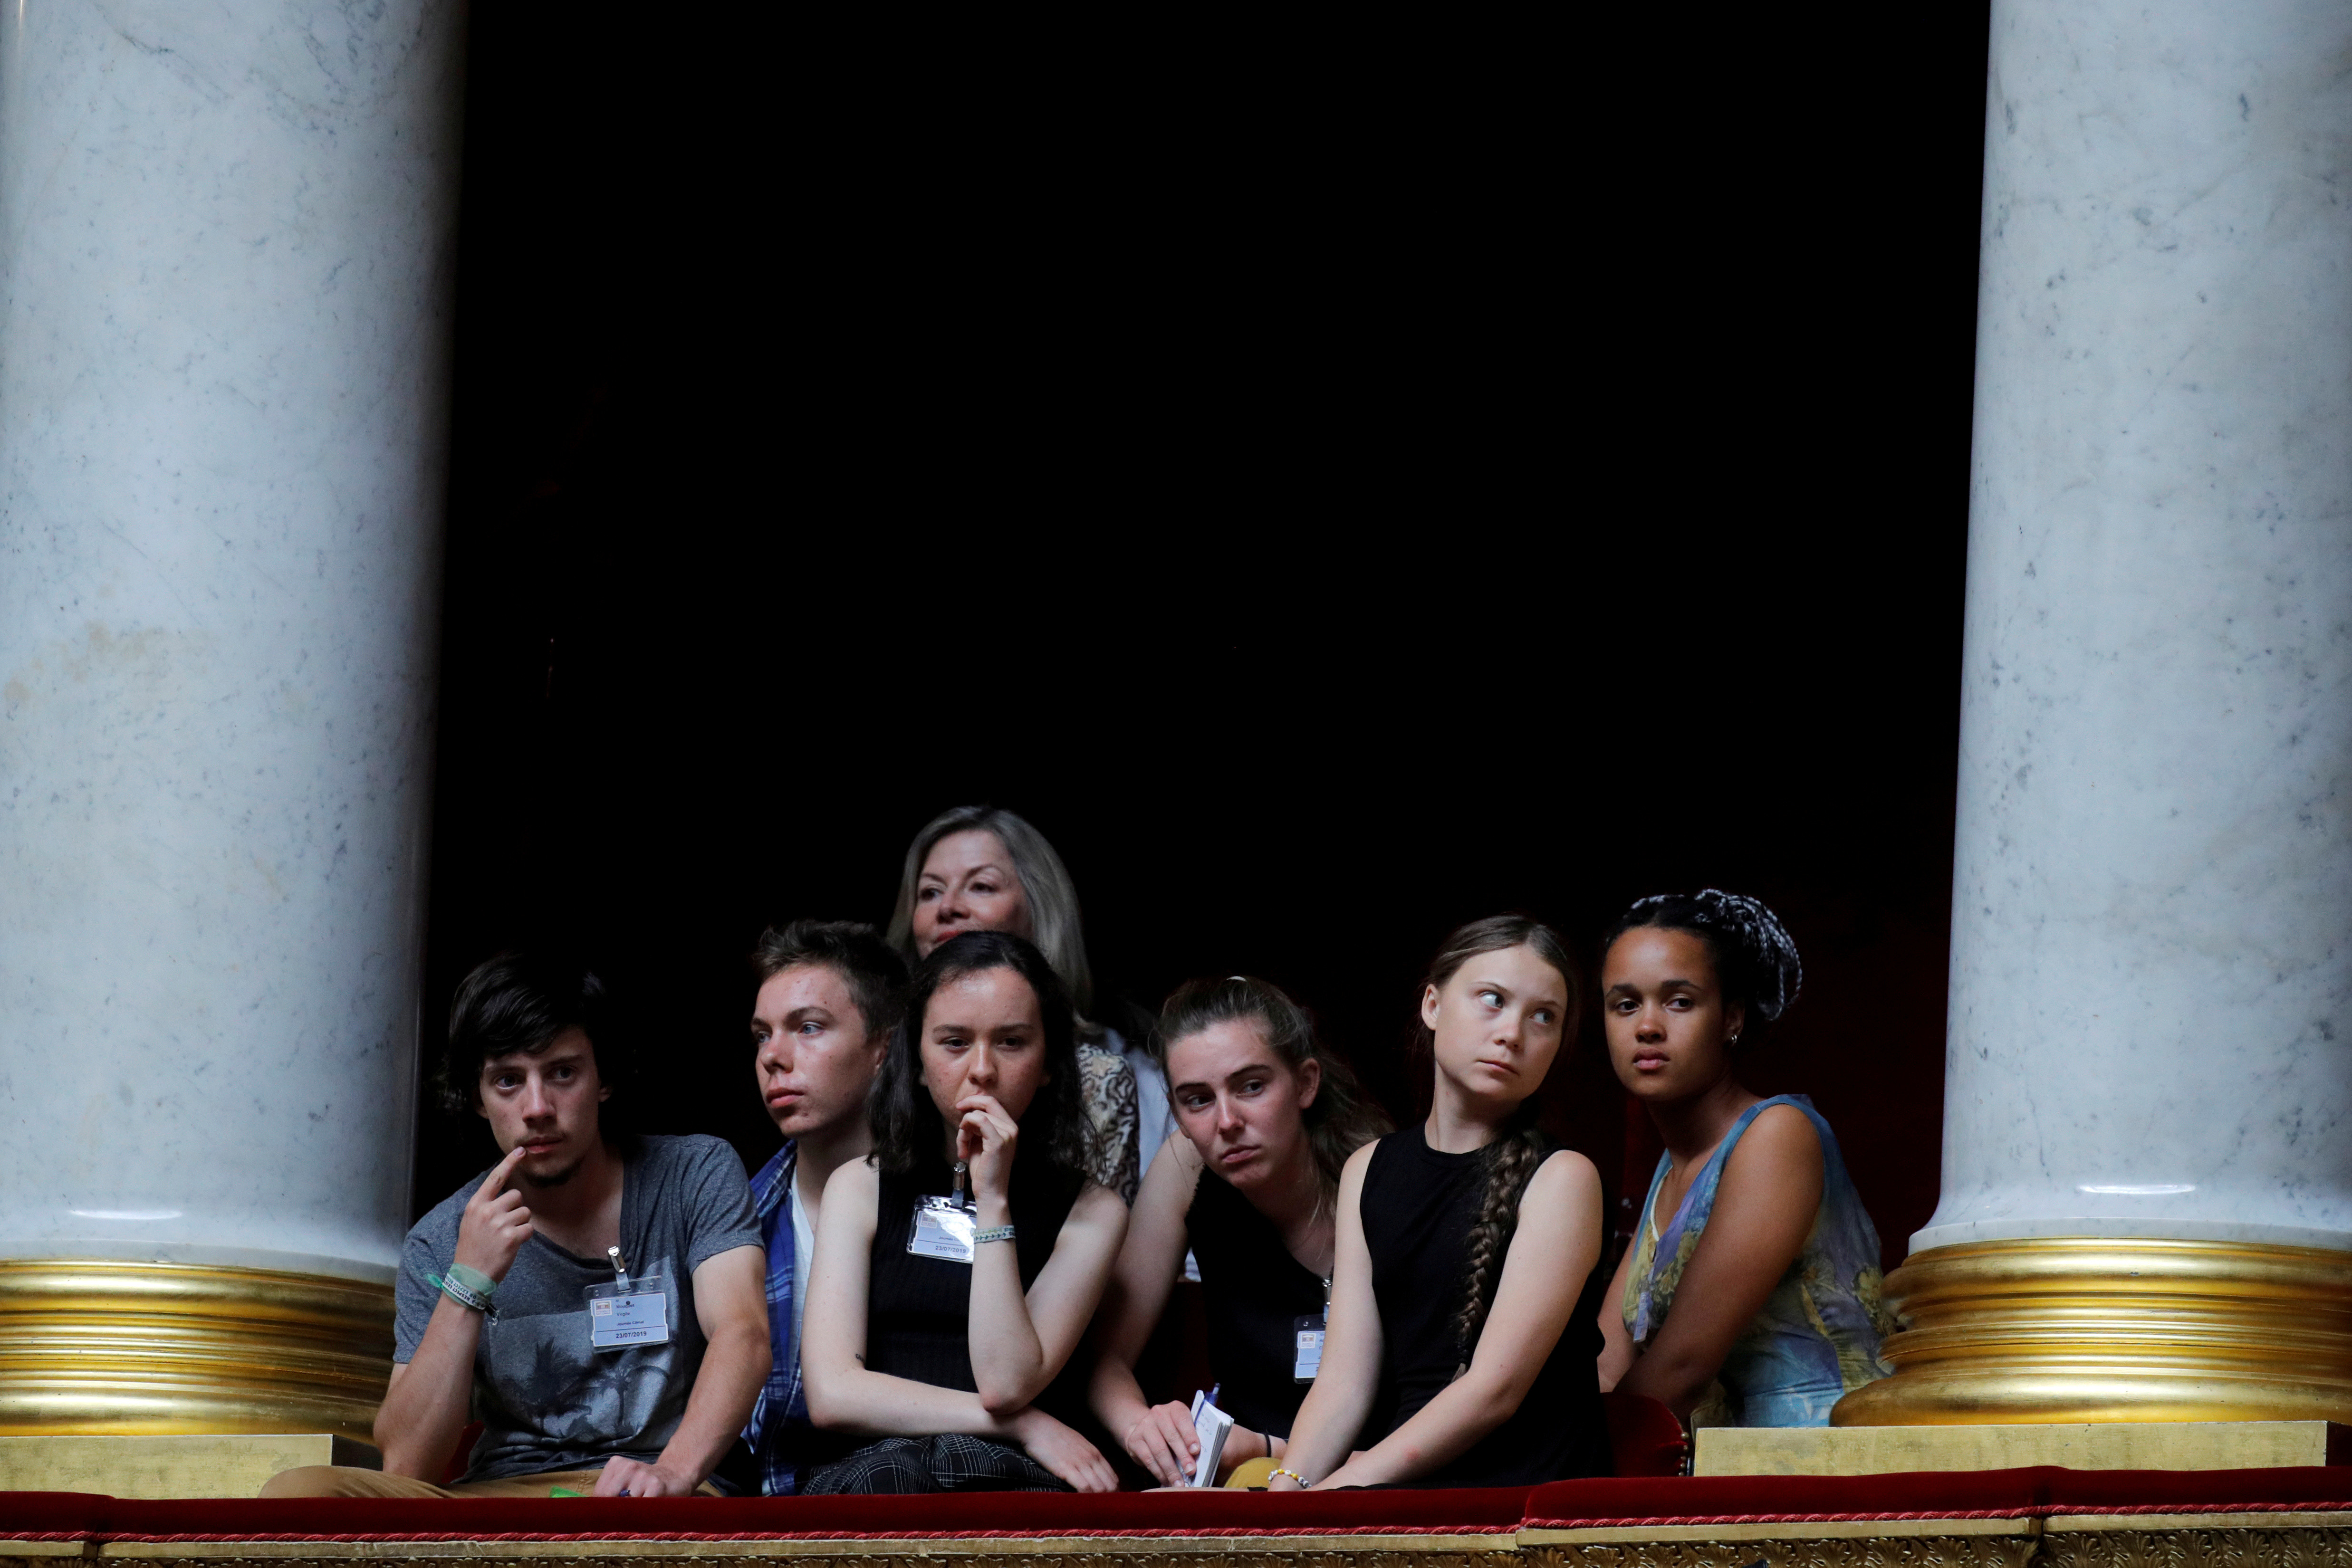 Swedish environmental activist Greta Thunberg, Ivy-Fleur Boileau, Virgile Mouquet, Adelaide Charlier and Alicia Arquetoux, French activists from the Youth for Climate movement, attend the questions to the government session, at the National Assembly in Paris, France, July 23, 2019